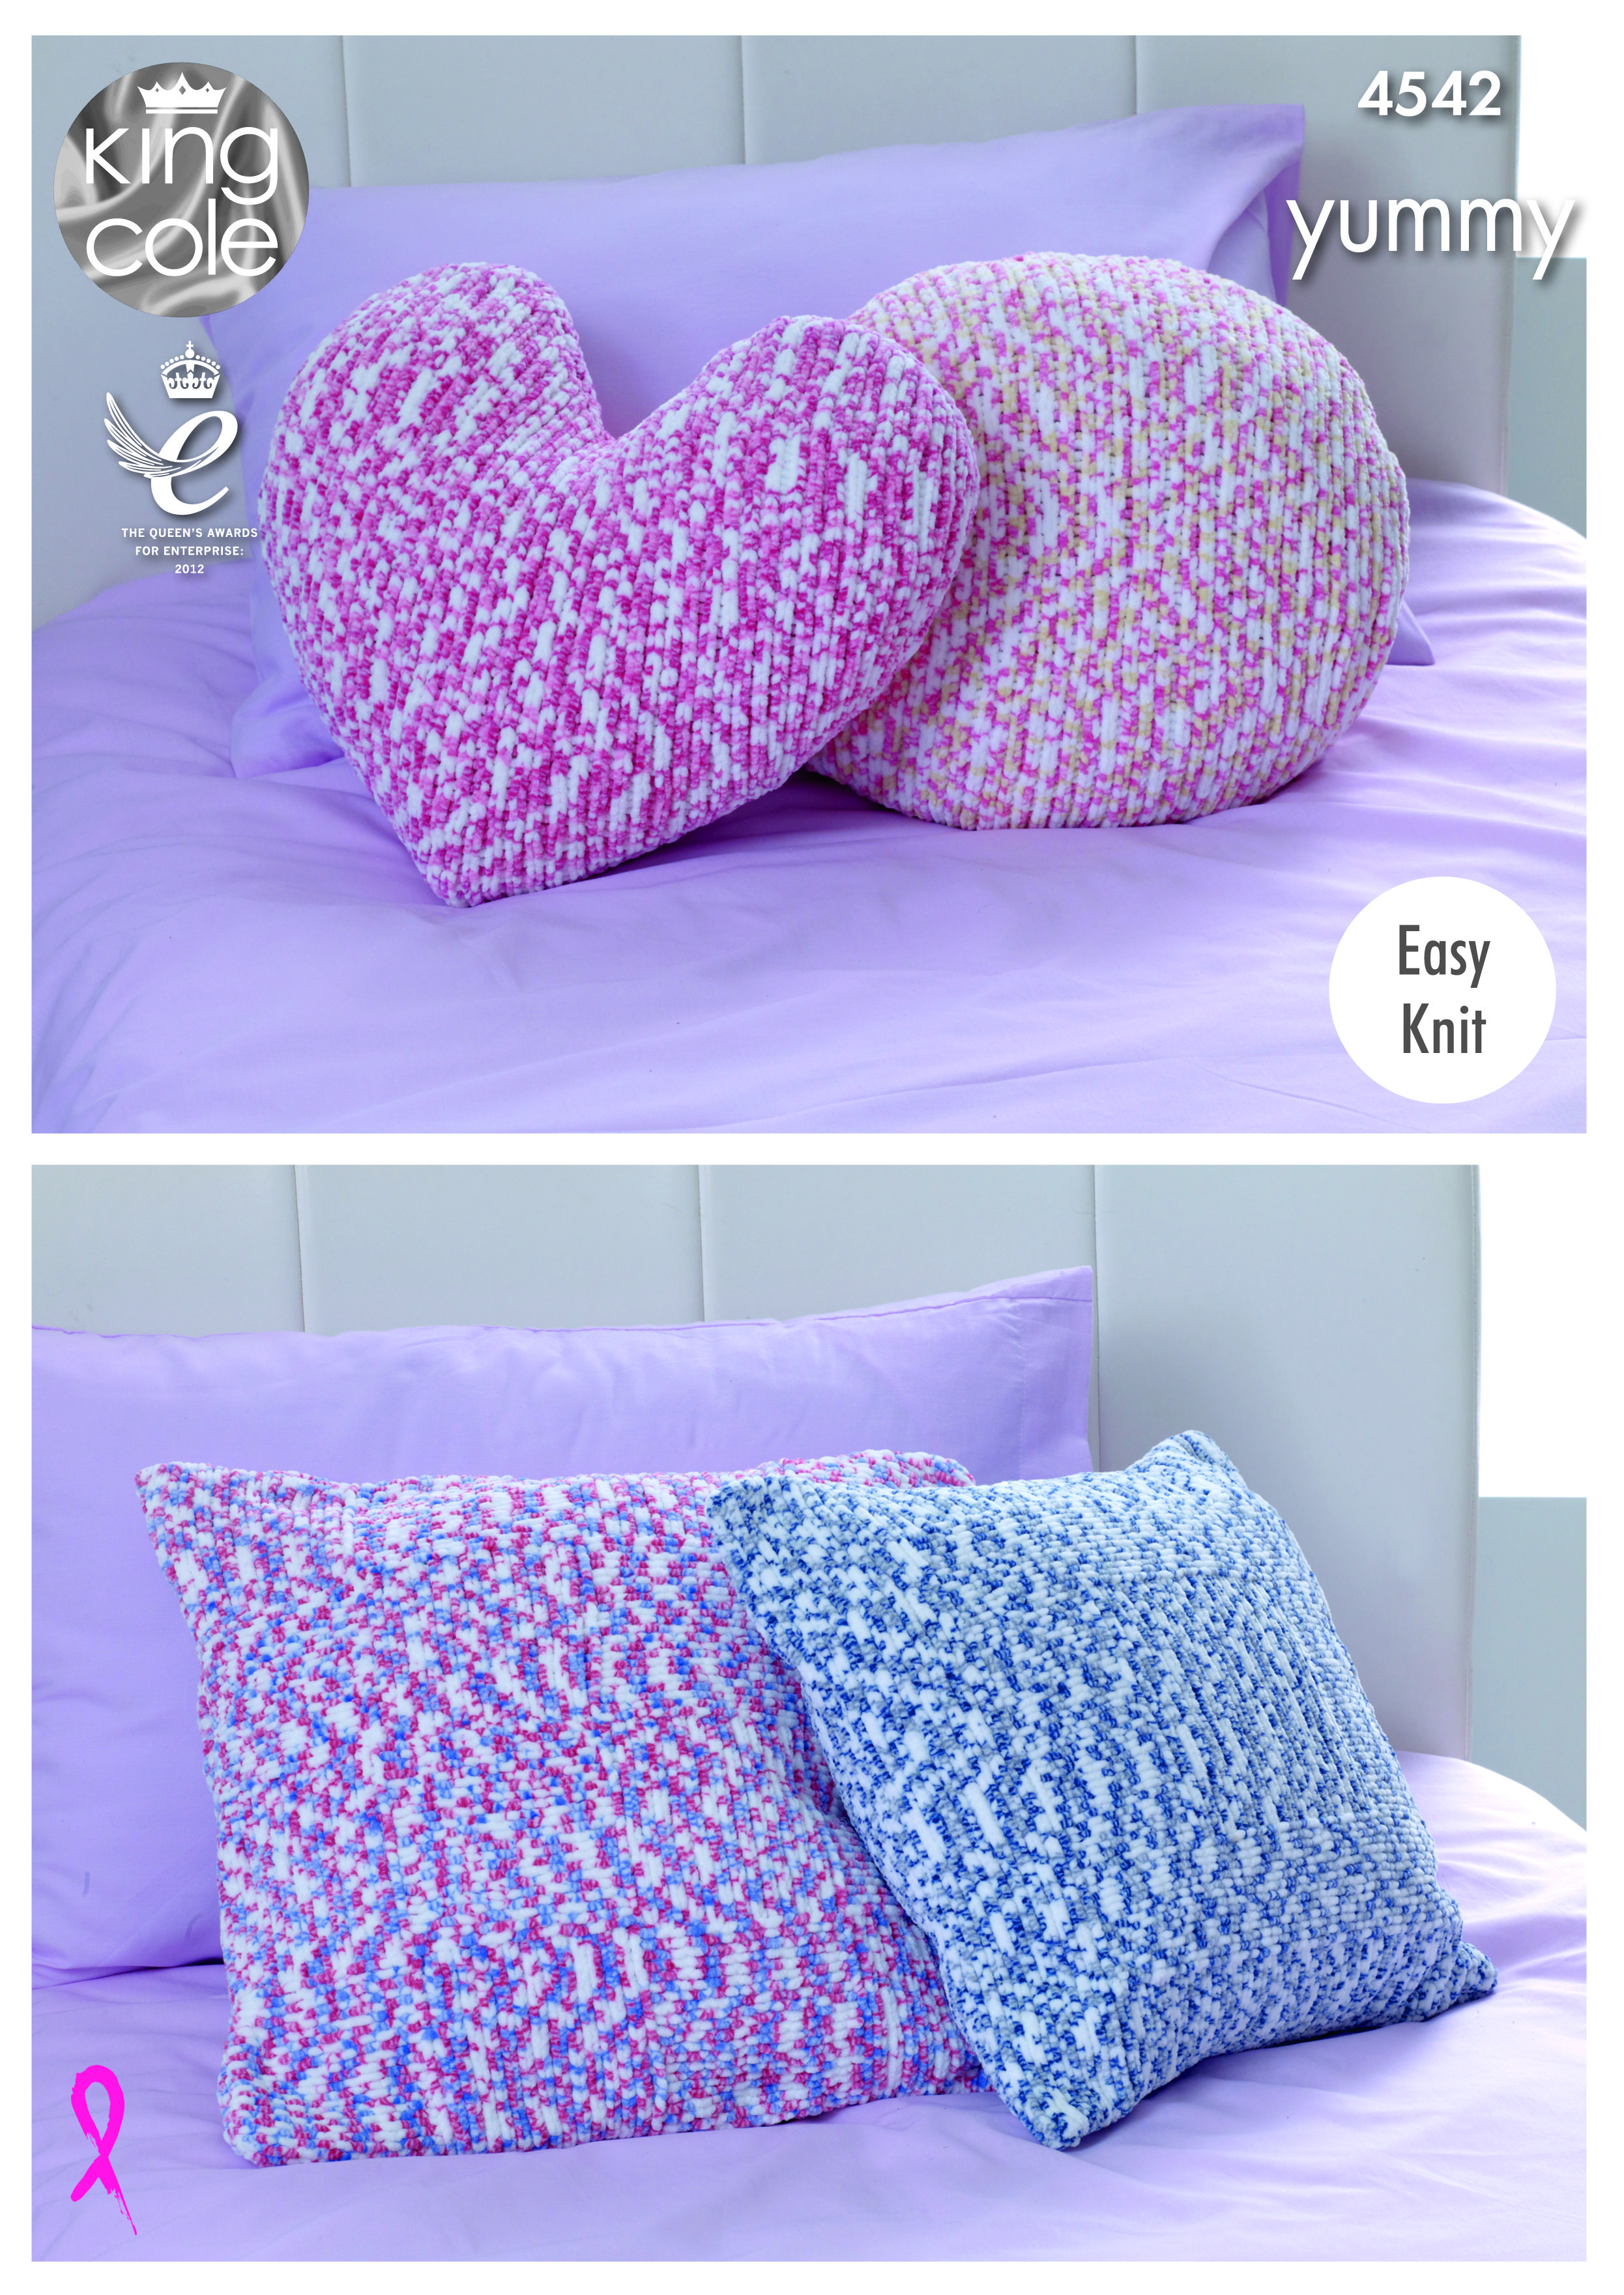 Knitted cushion covers love heart king cole homeware patterns knitted cushion covers love heart king cole bankloansurffo Image collections